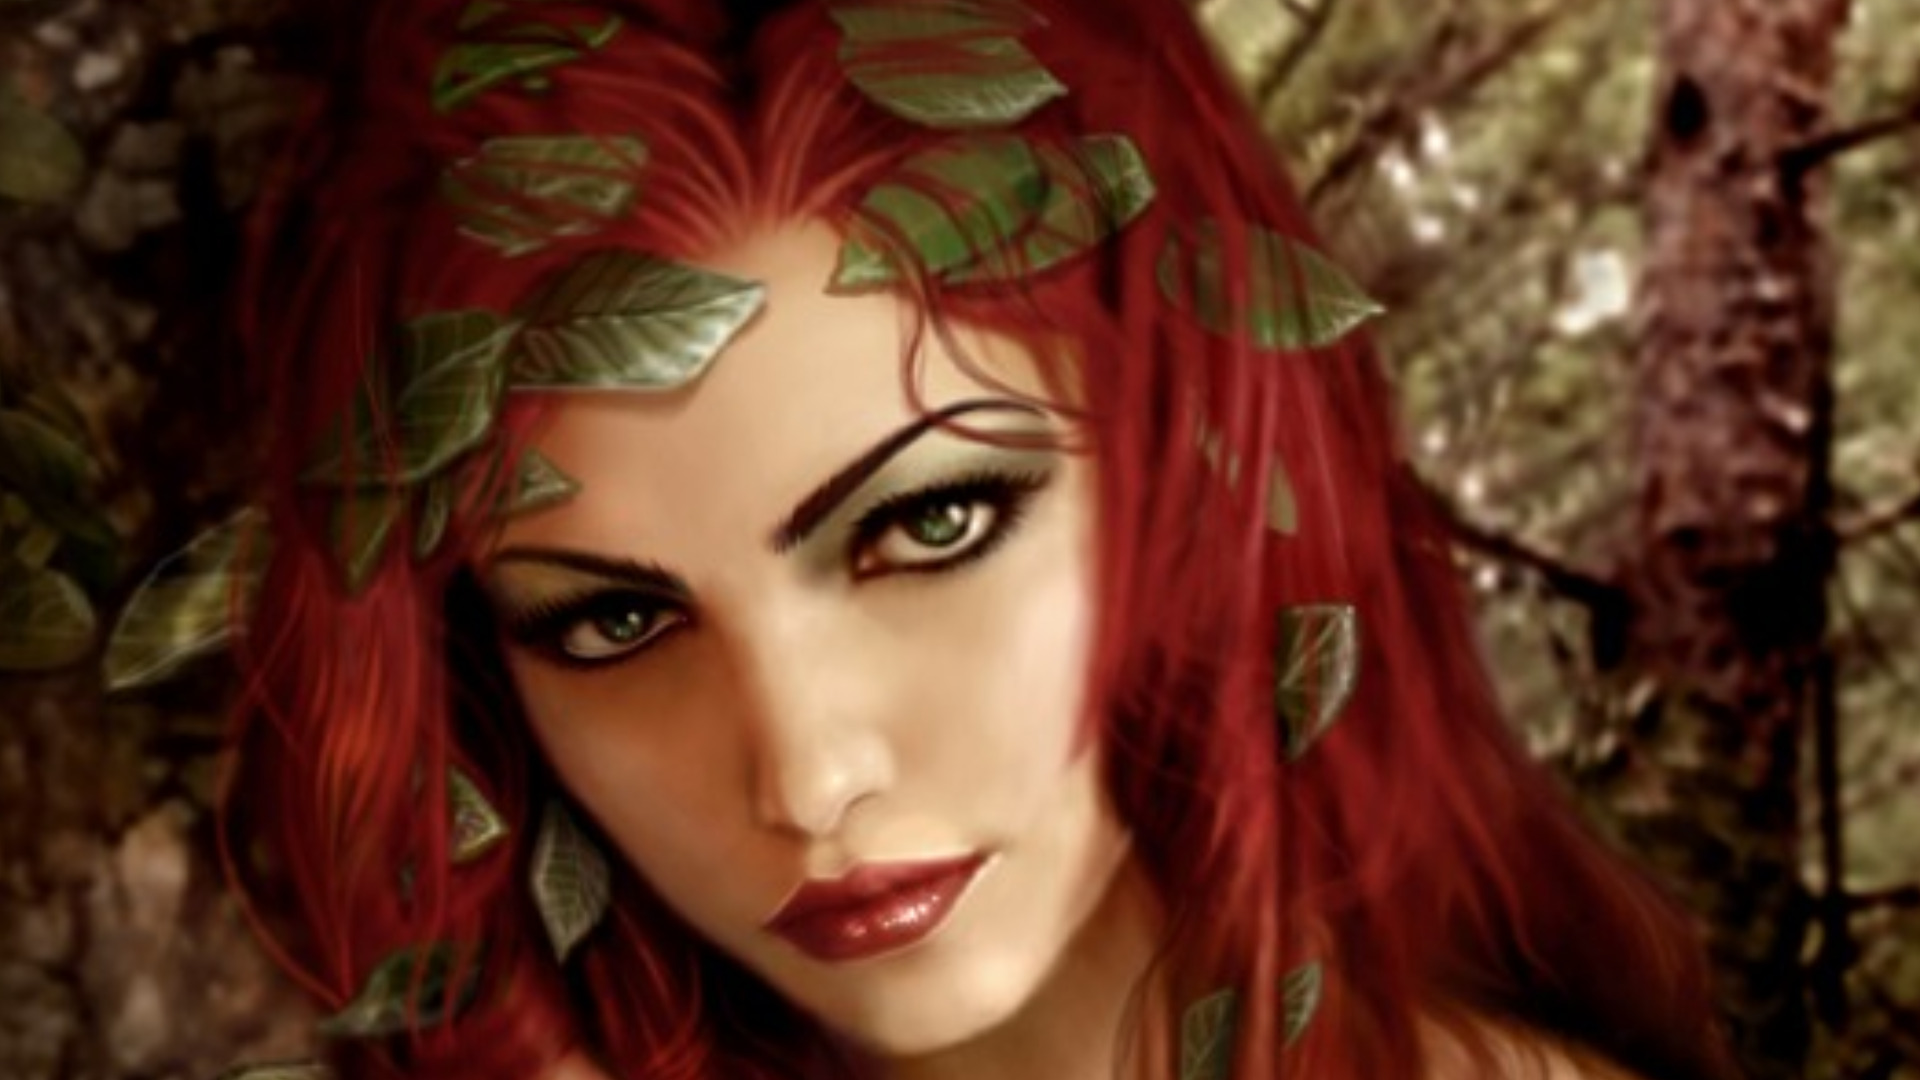 Fantasy - Women  Woman Fantasy Beautiful Redhead Wallpaper